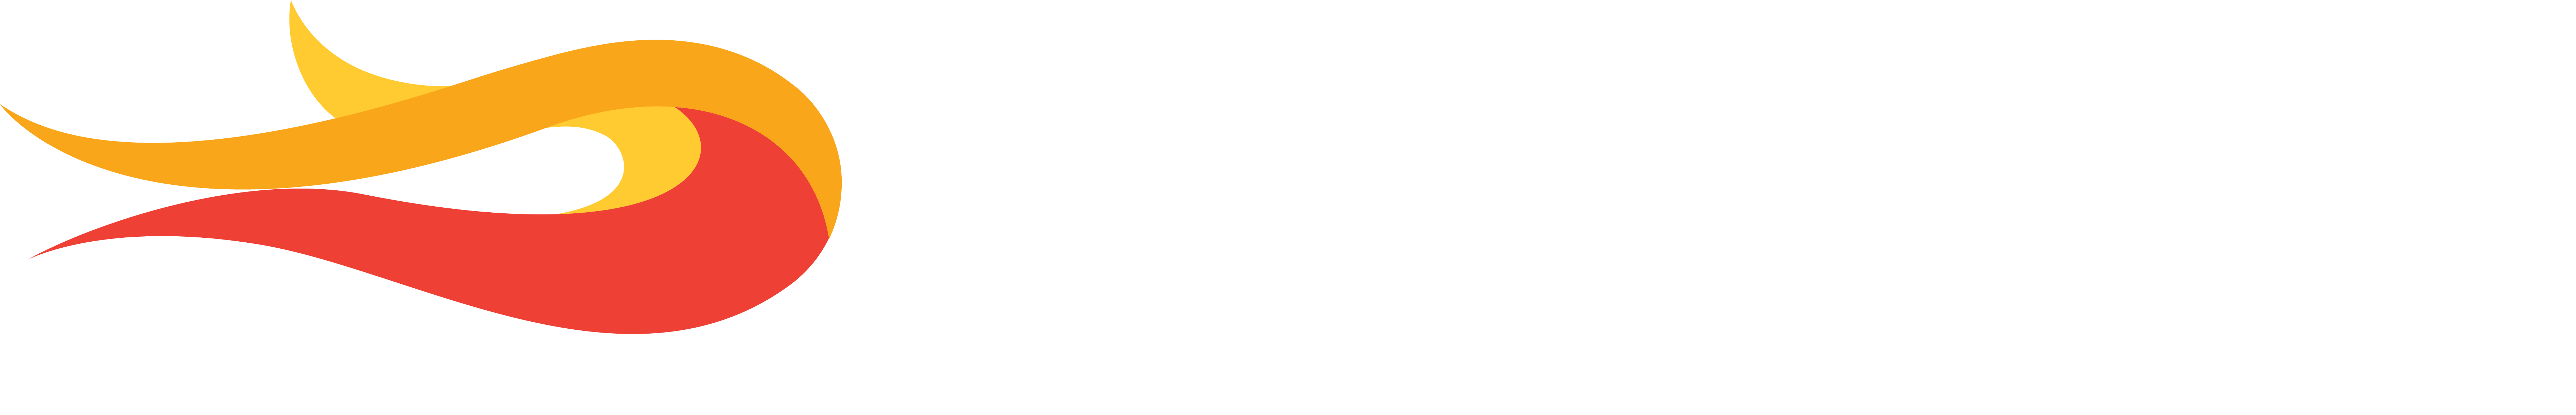 Dyndrite Additive Manufacturing Event Headlines